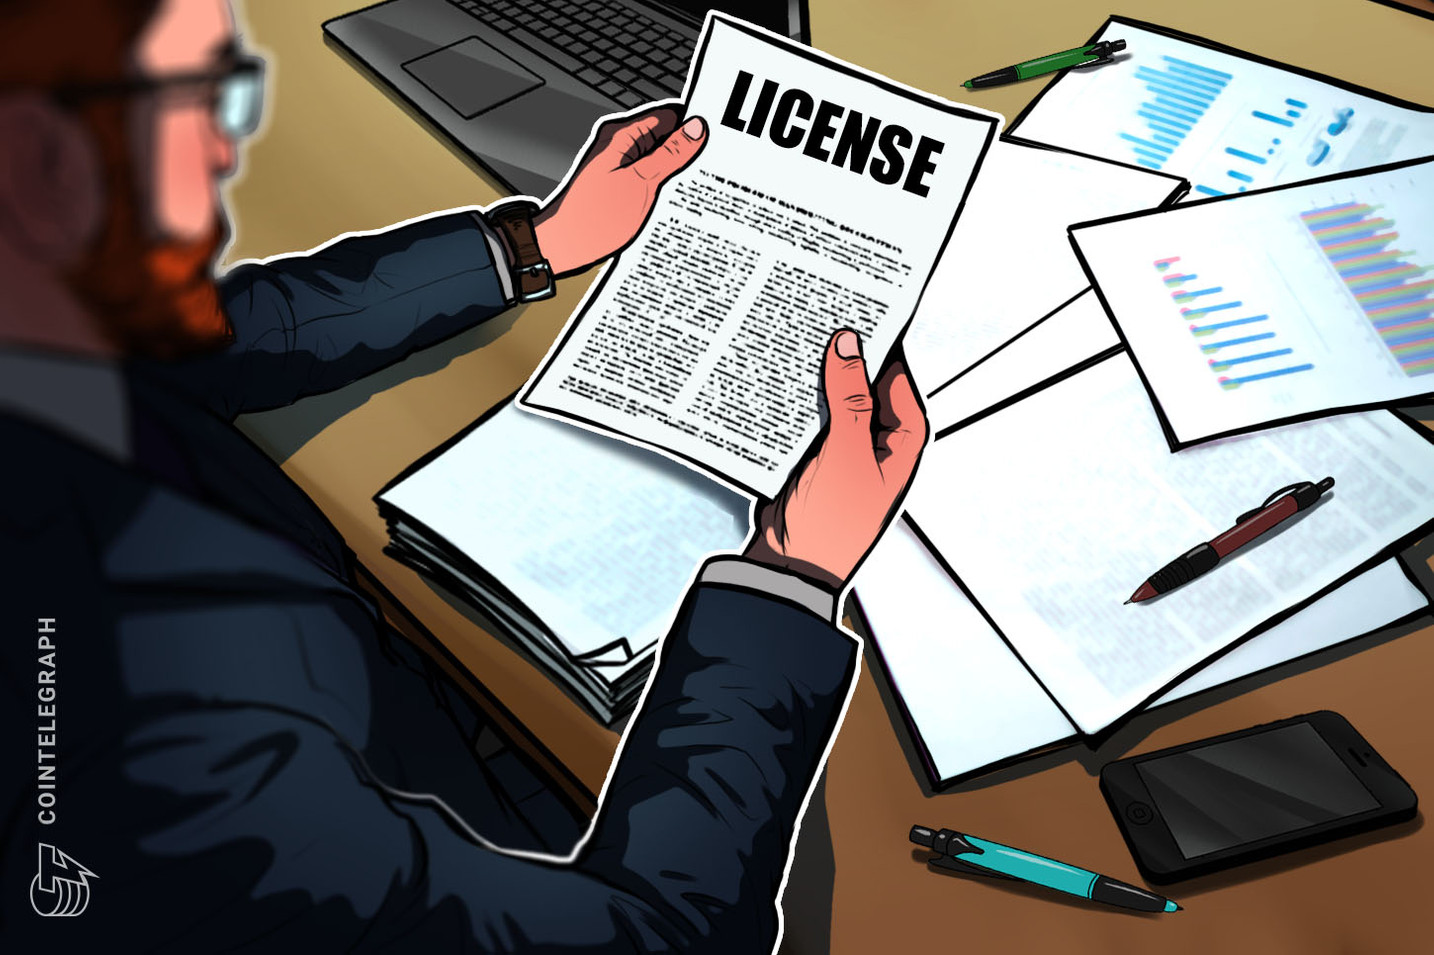 New Jersey follows in its neighbor state's footsteps with crypto license bill